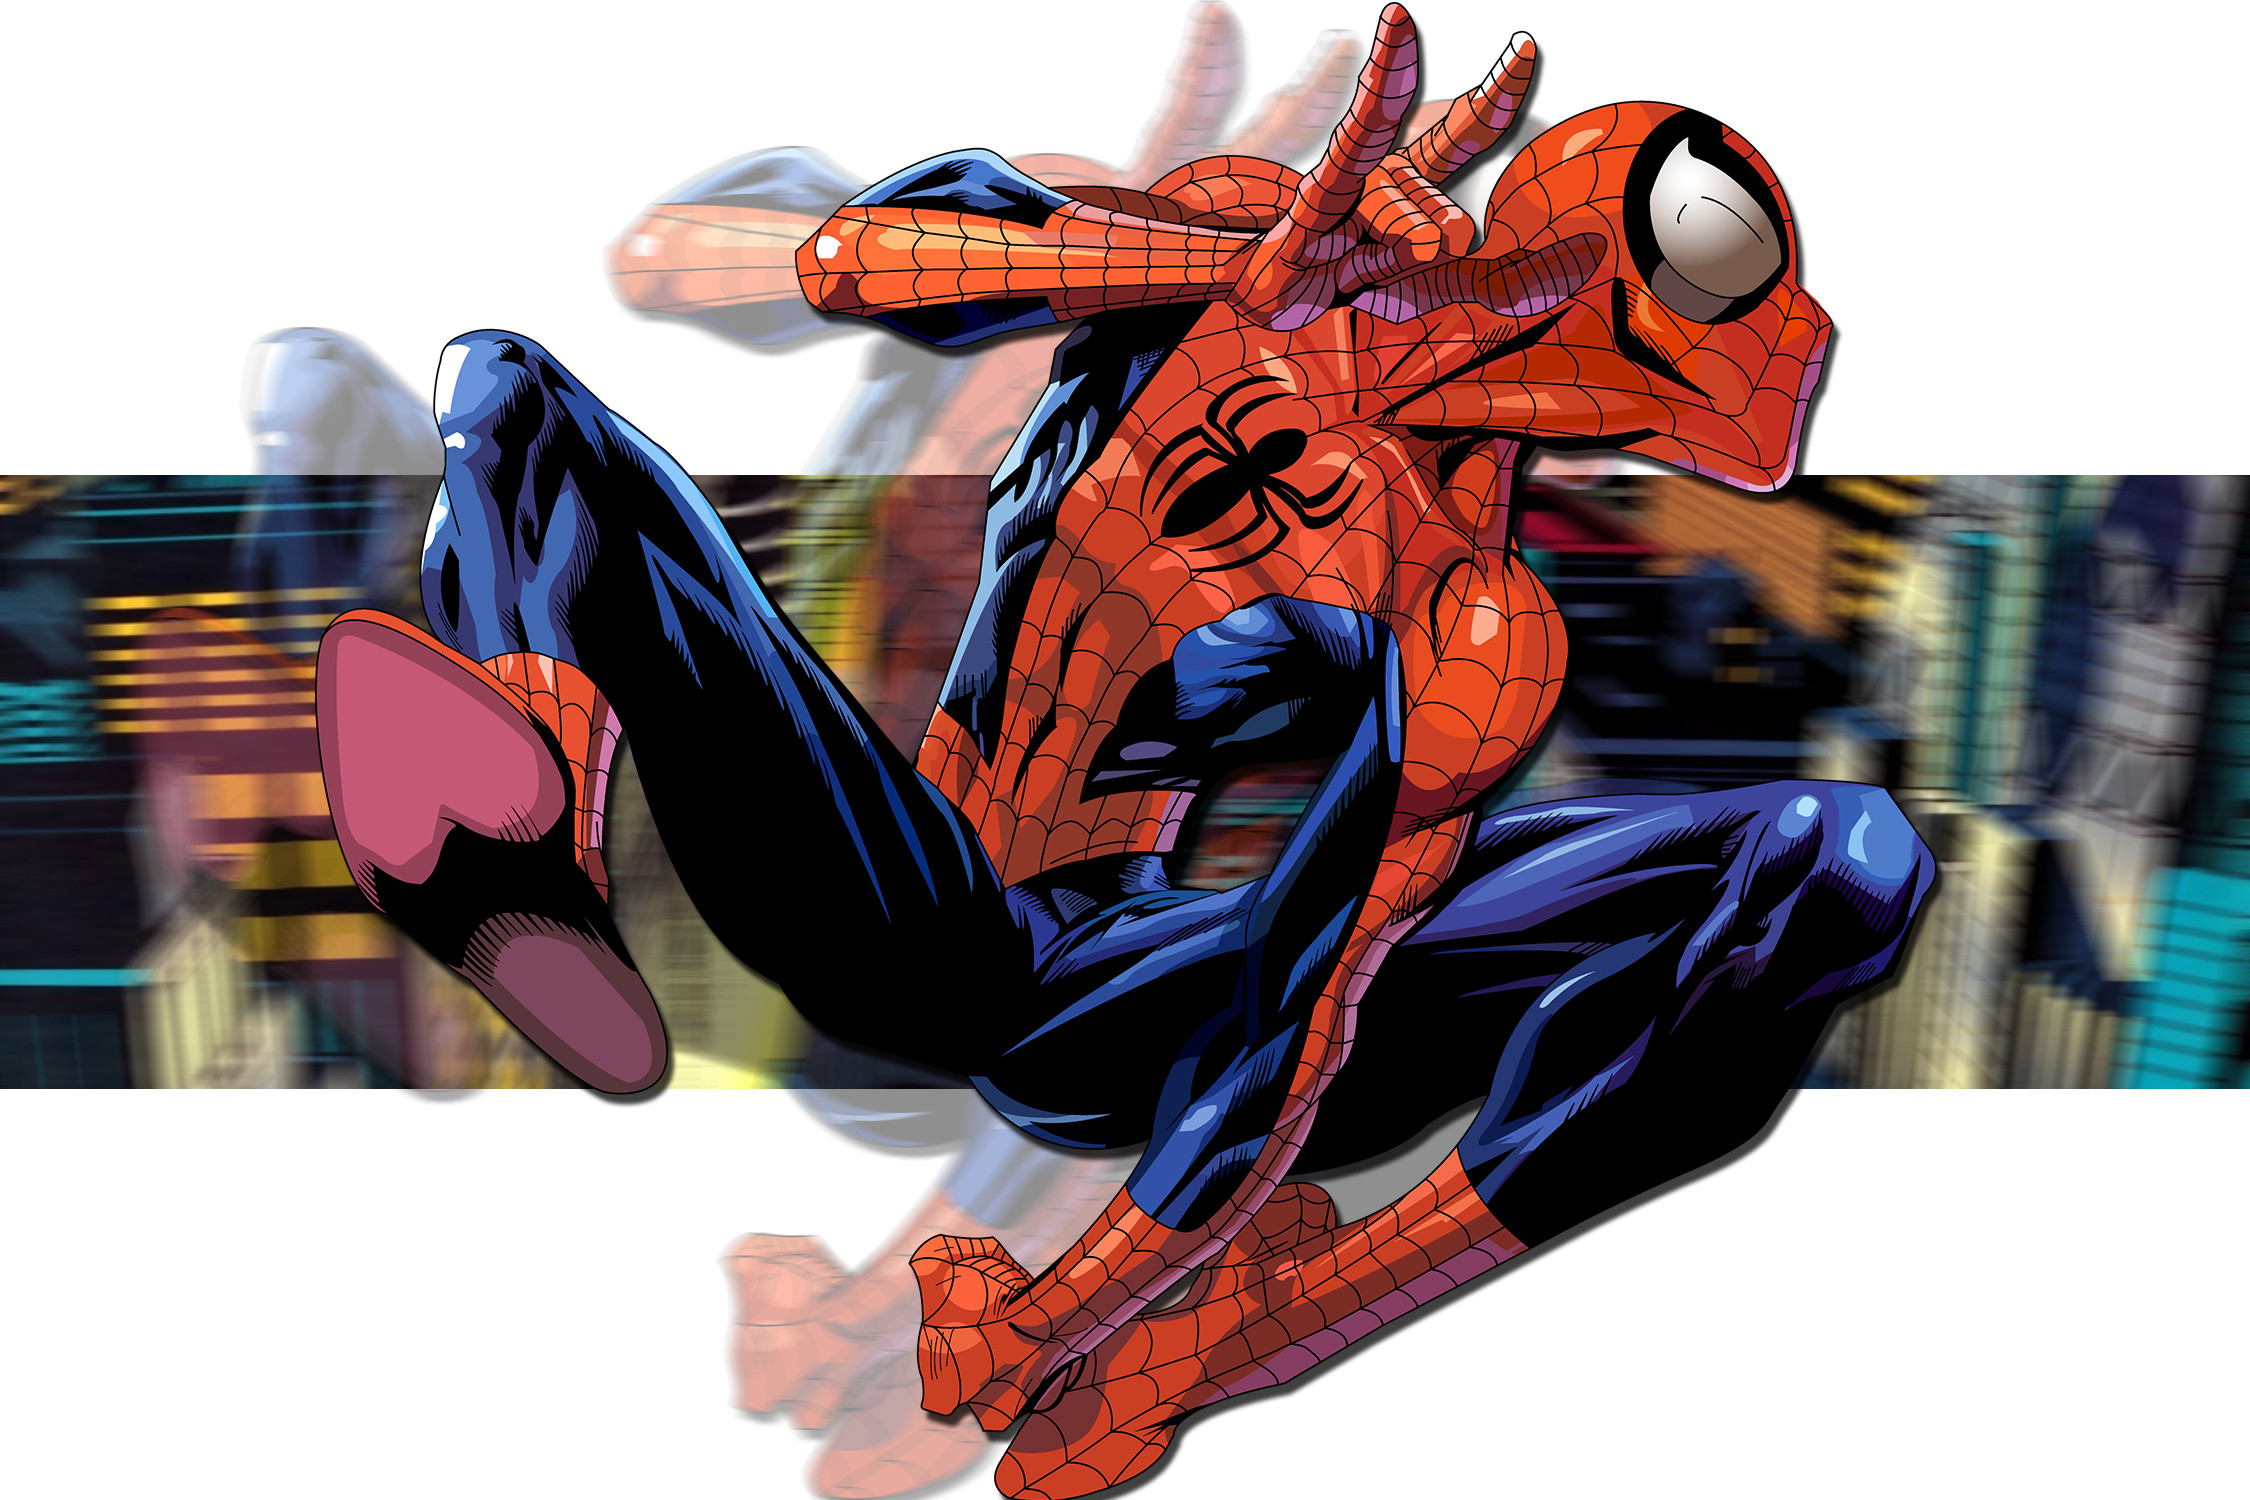 Ultimate spider man iphone wallpaper – photo#11